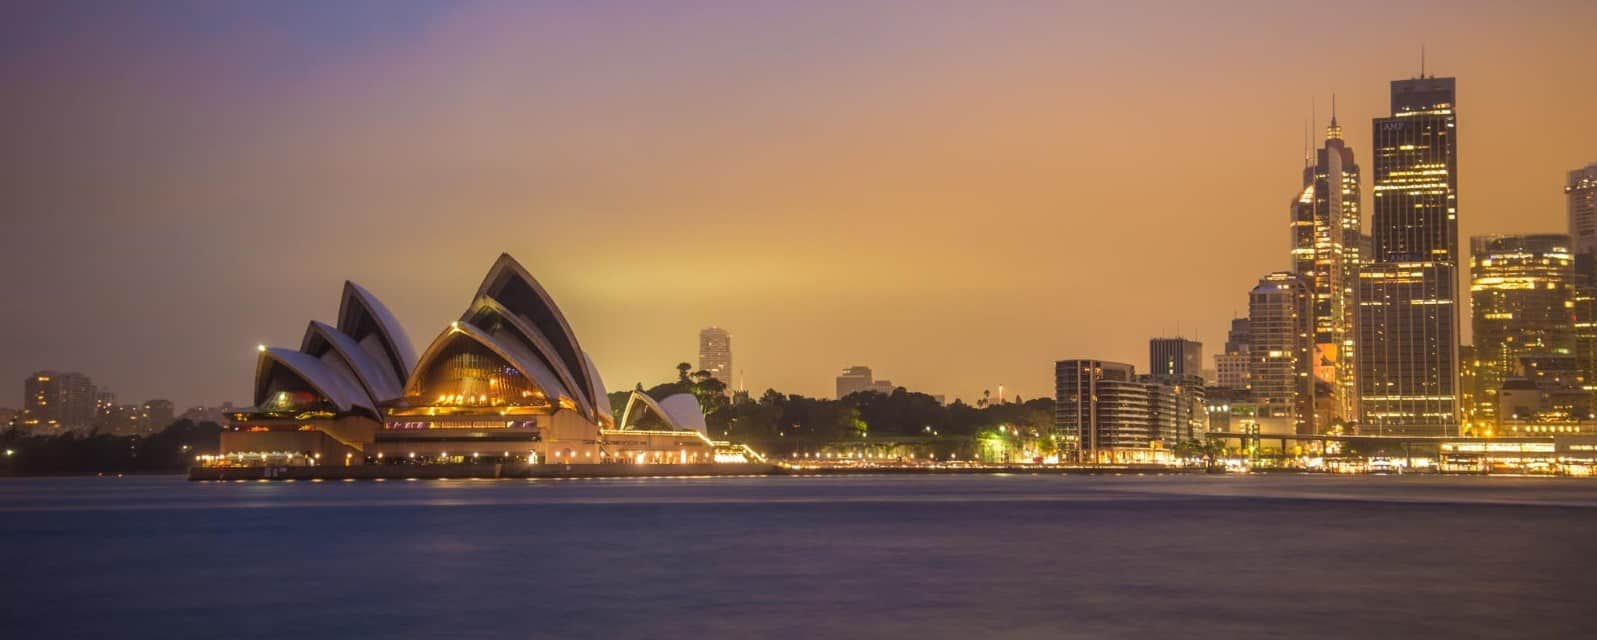 Sydney's International Accounting Solutions helps entrepreneurs, small business & multinationals set up business in Australia